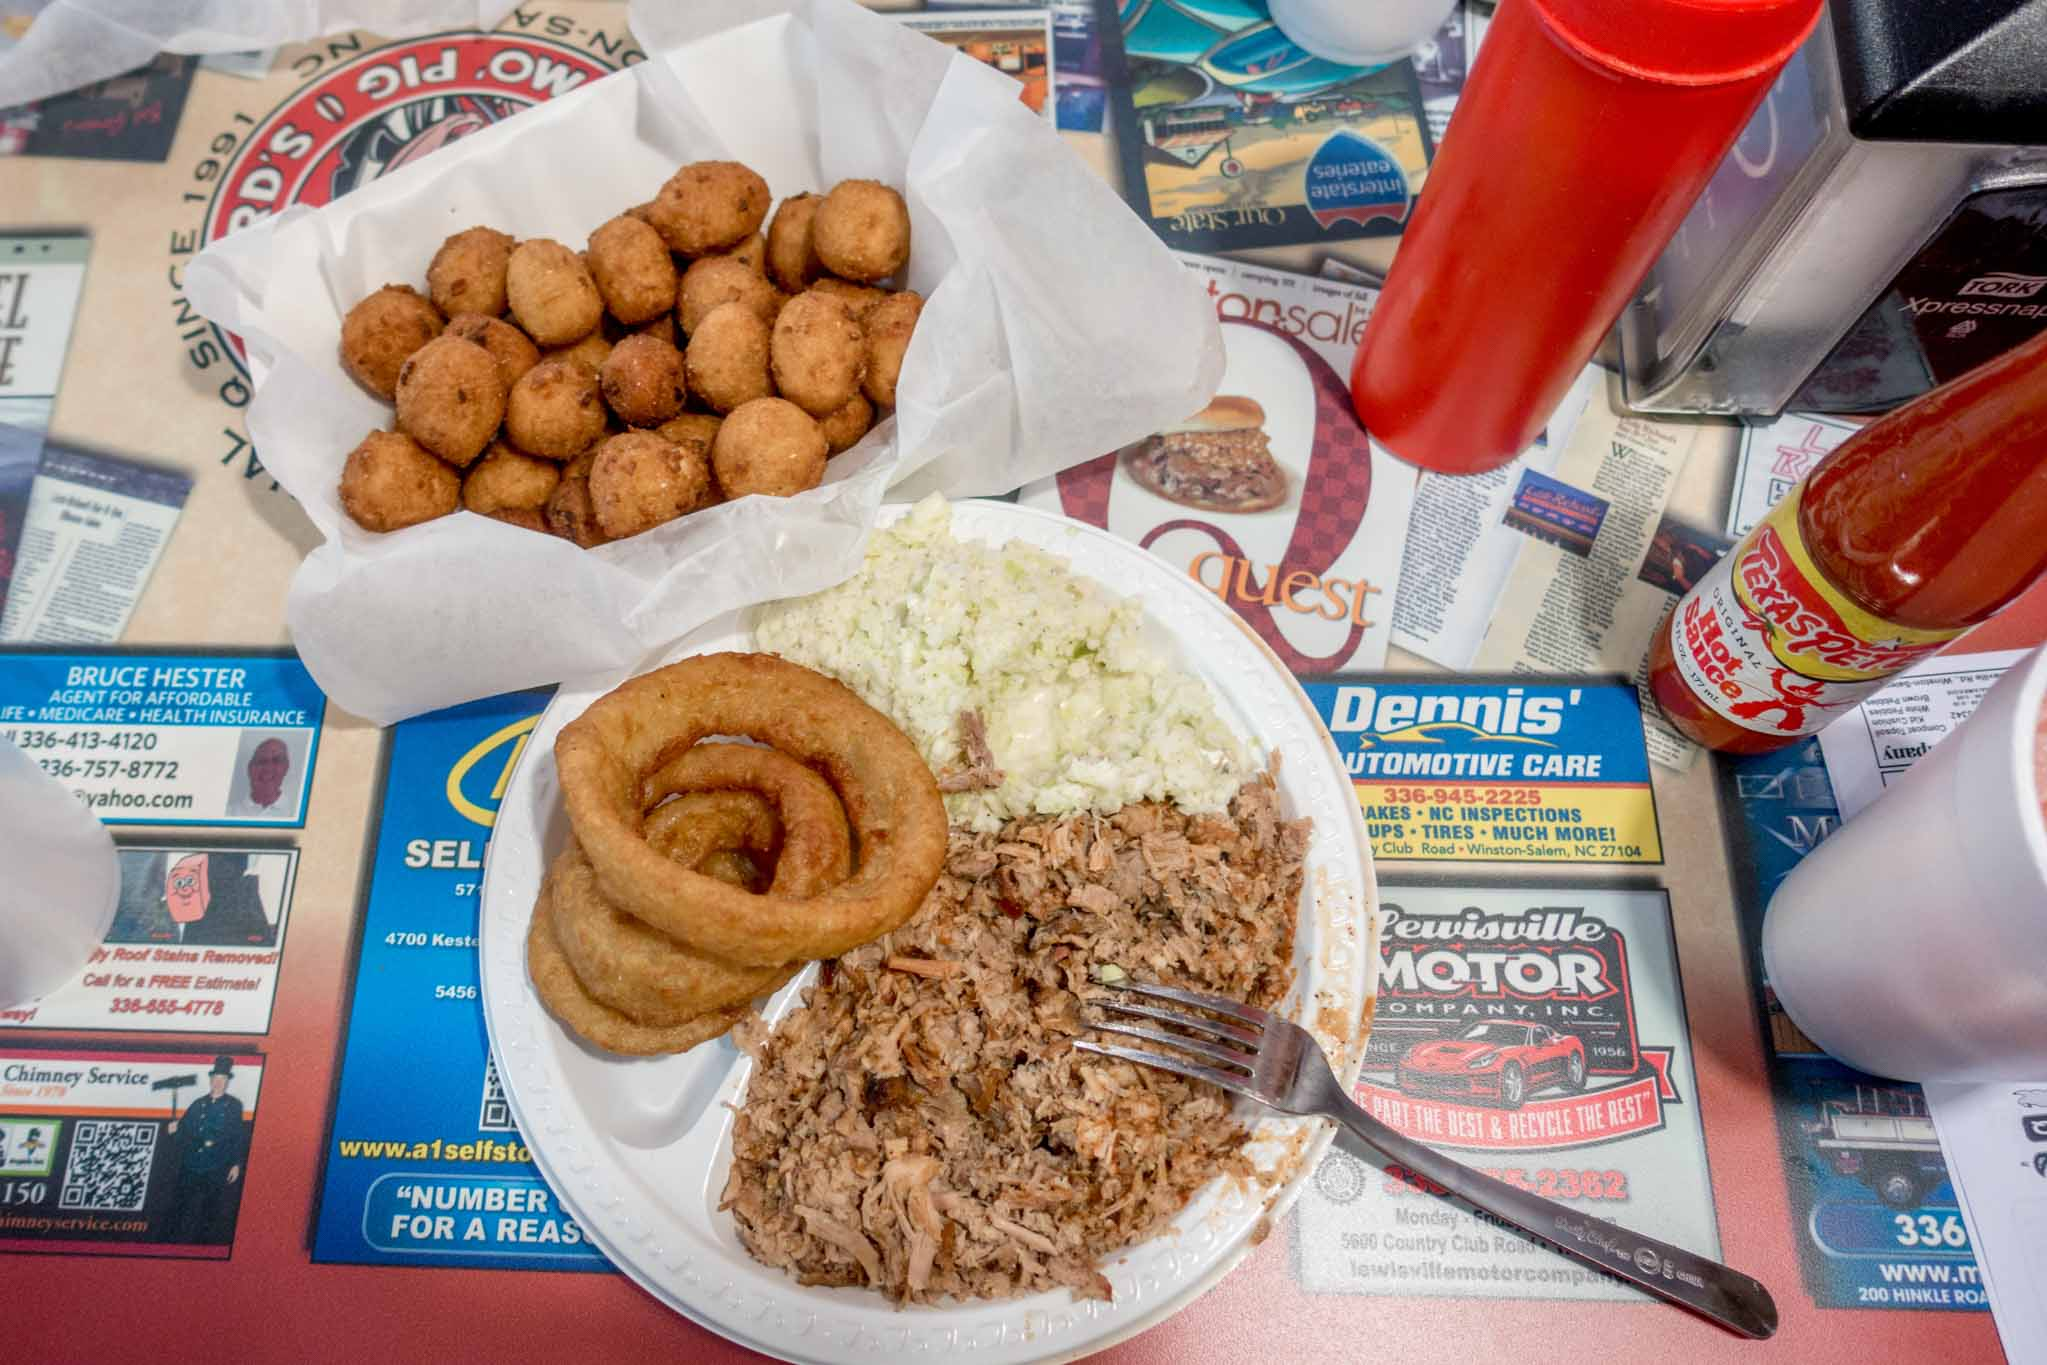 Barbecue, onion rings, and hush puppies on plates